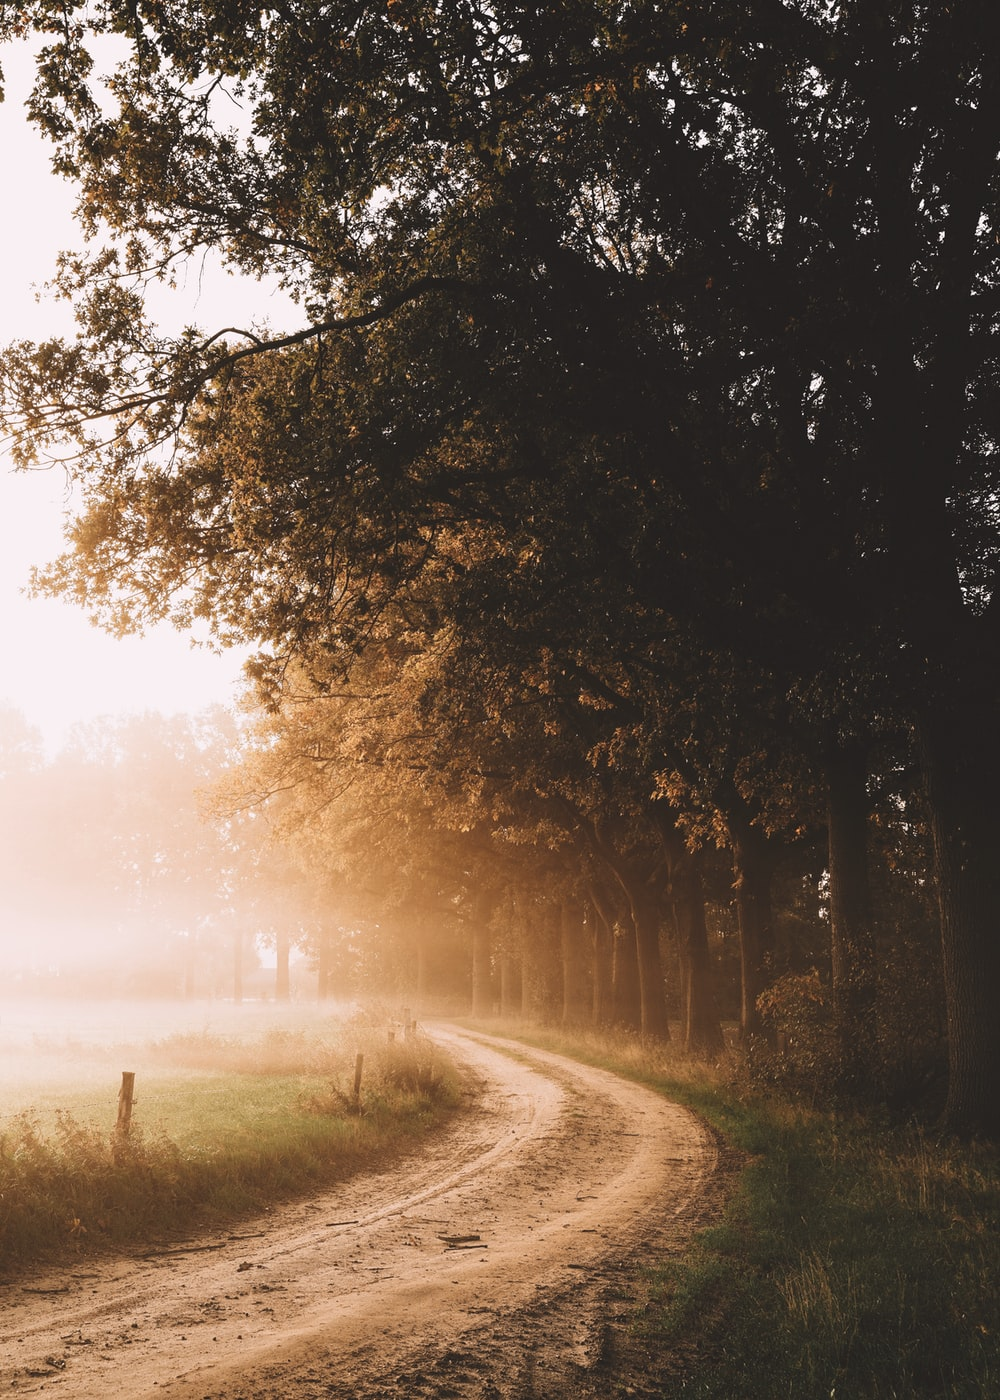 unpaved road near tall trees with fog